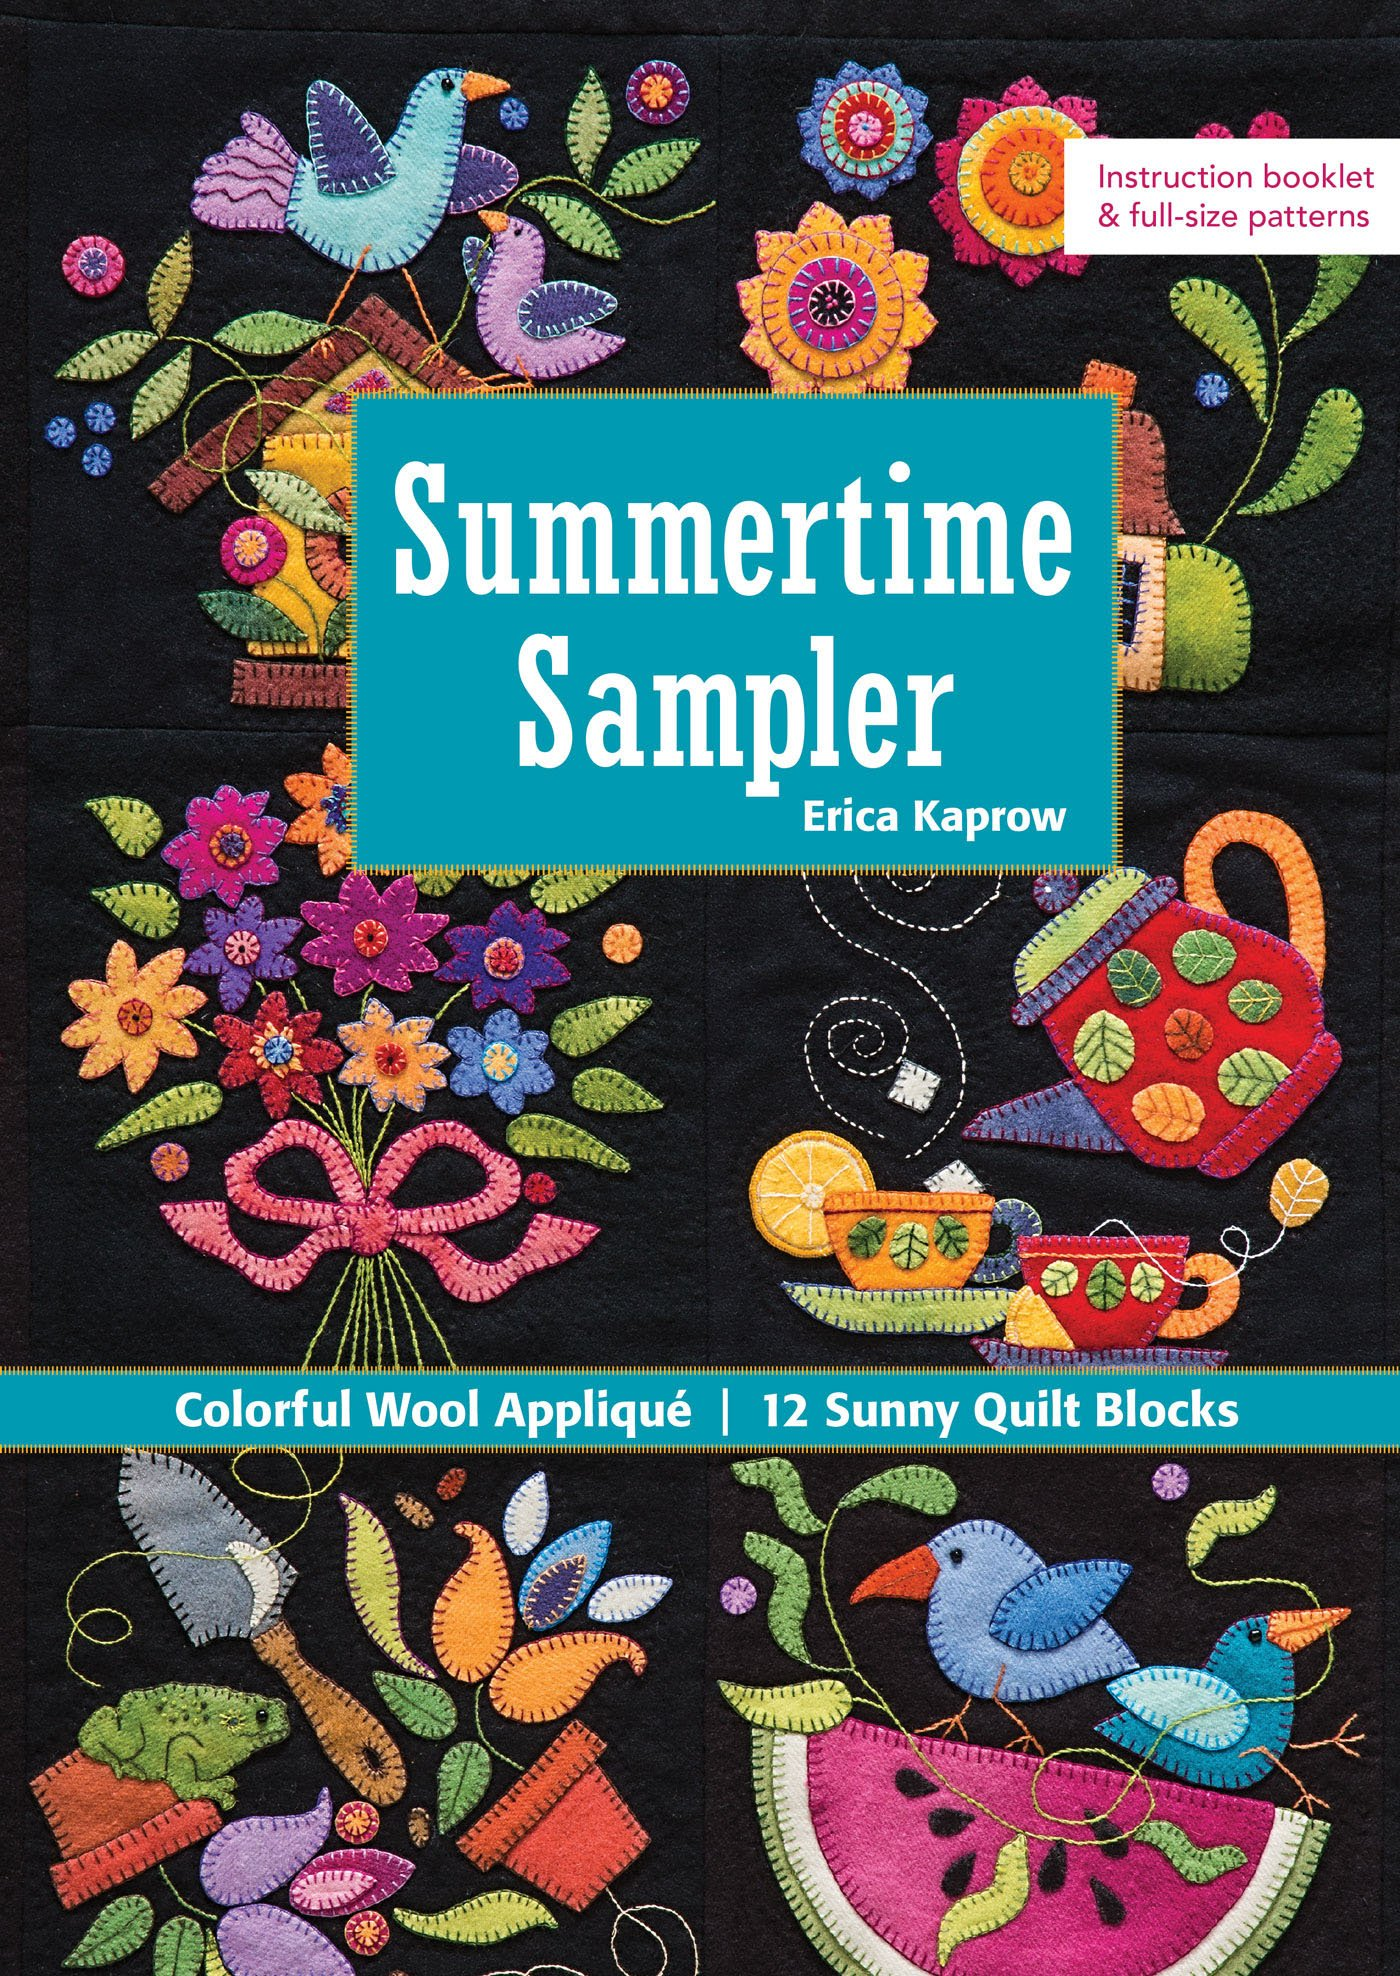 Summertime Sampler: Colorful Wool Appliqué • Sunny Quilt Blocks